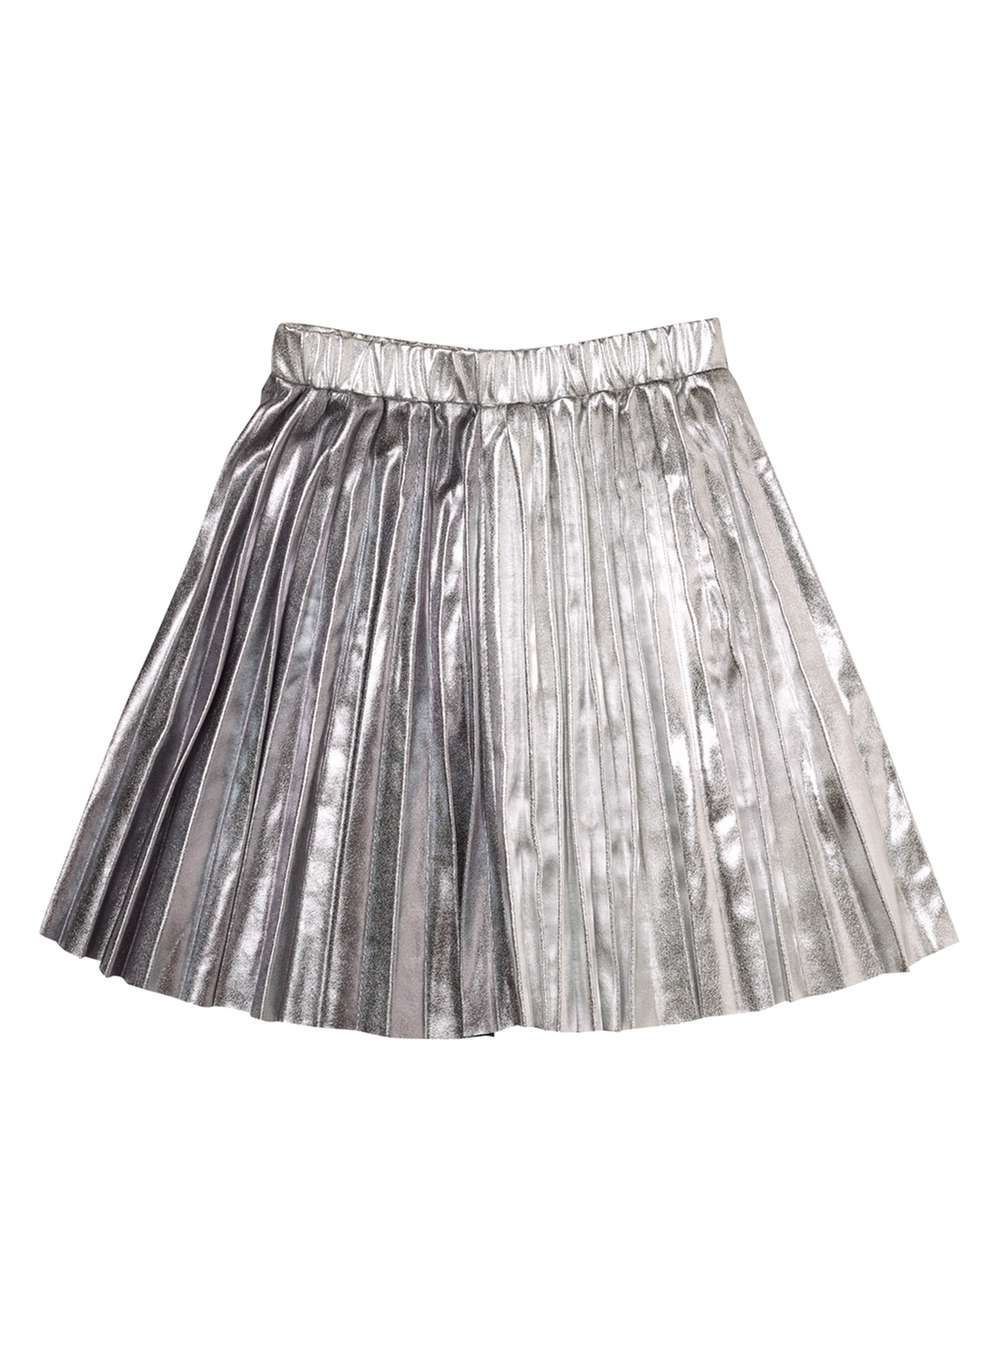 14fc536e1 Girls Silver Pleated Skirt (18 months - 6 years)